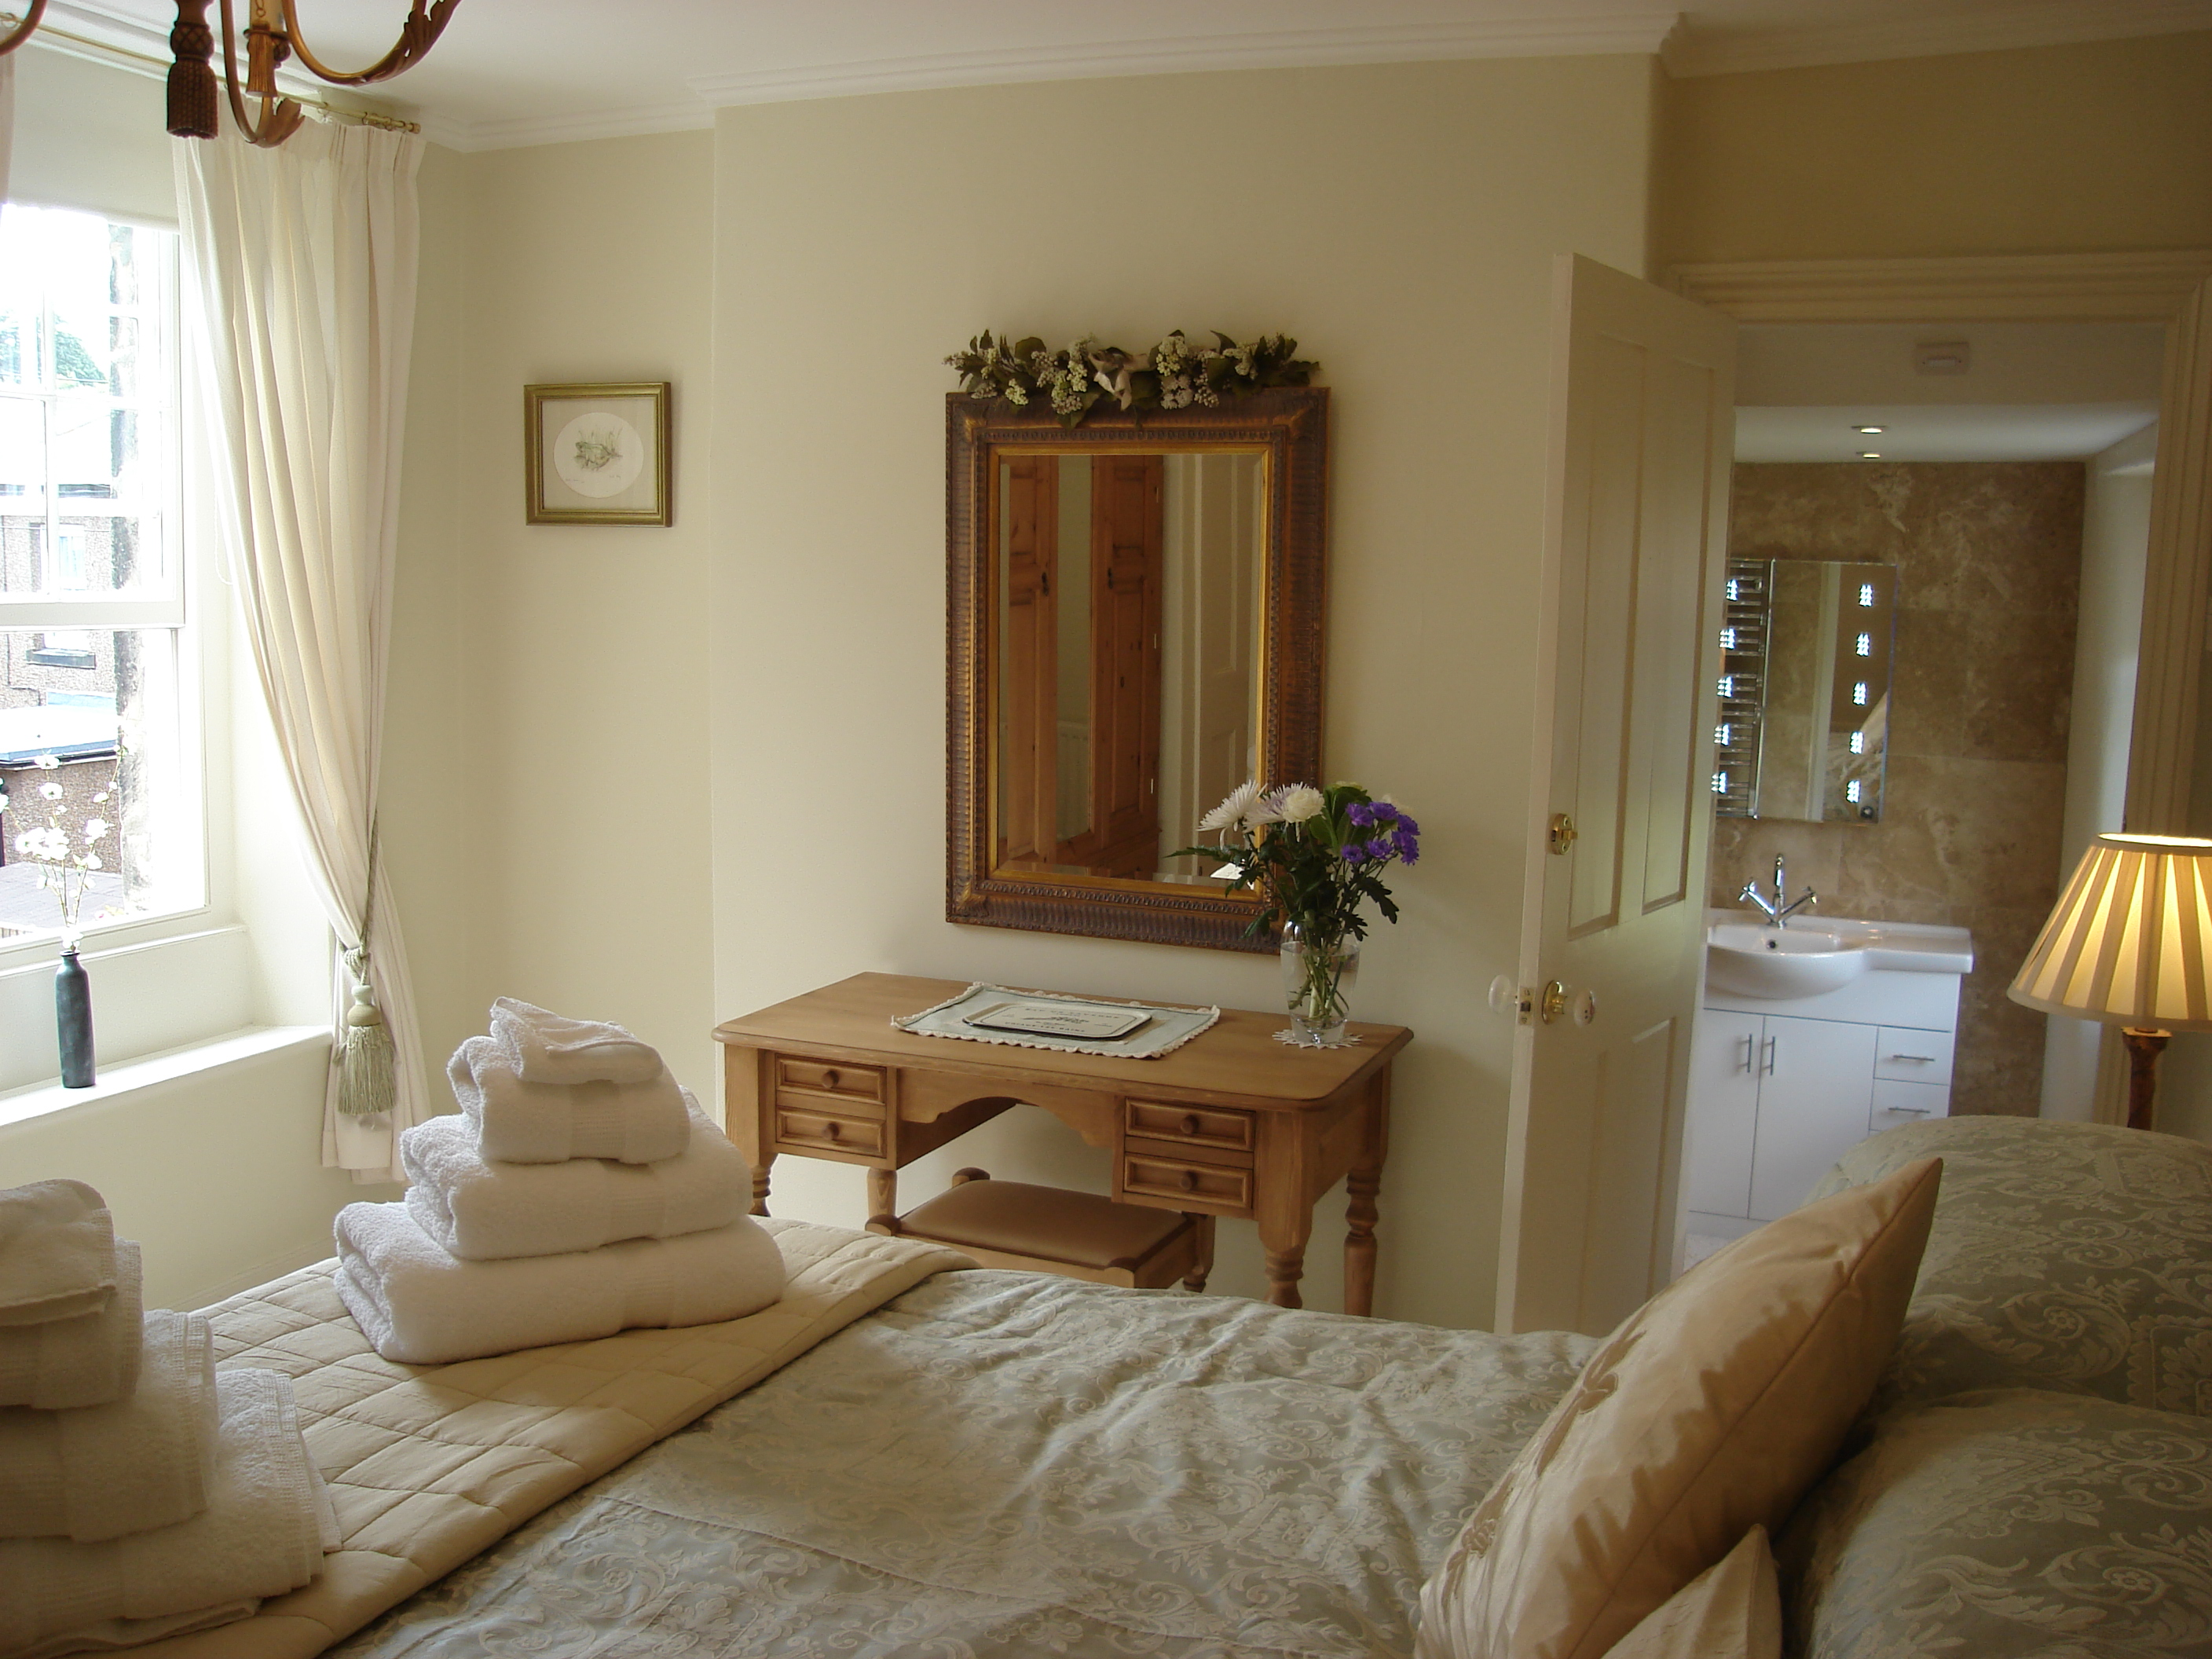 Coquet View luxury Georgian holiday cottage Warkworth near the beach, luxury holiday cottages near Alnwick